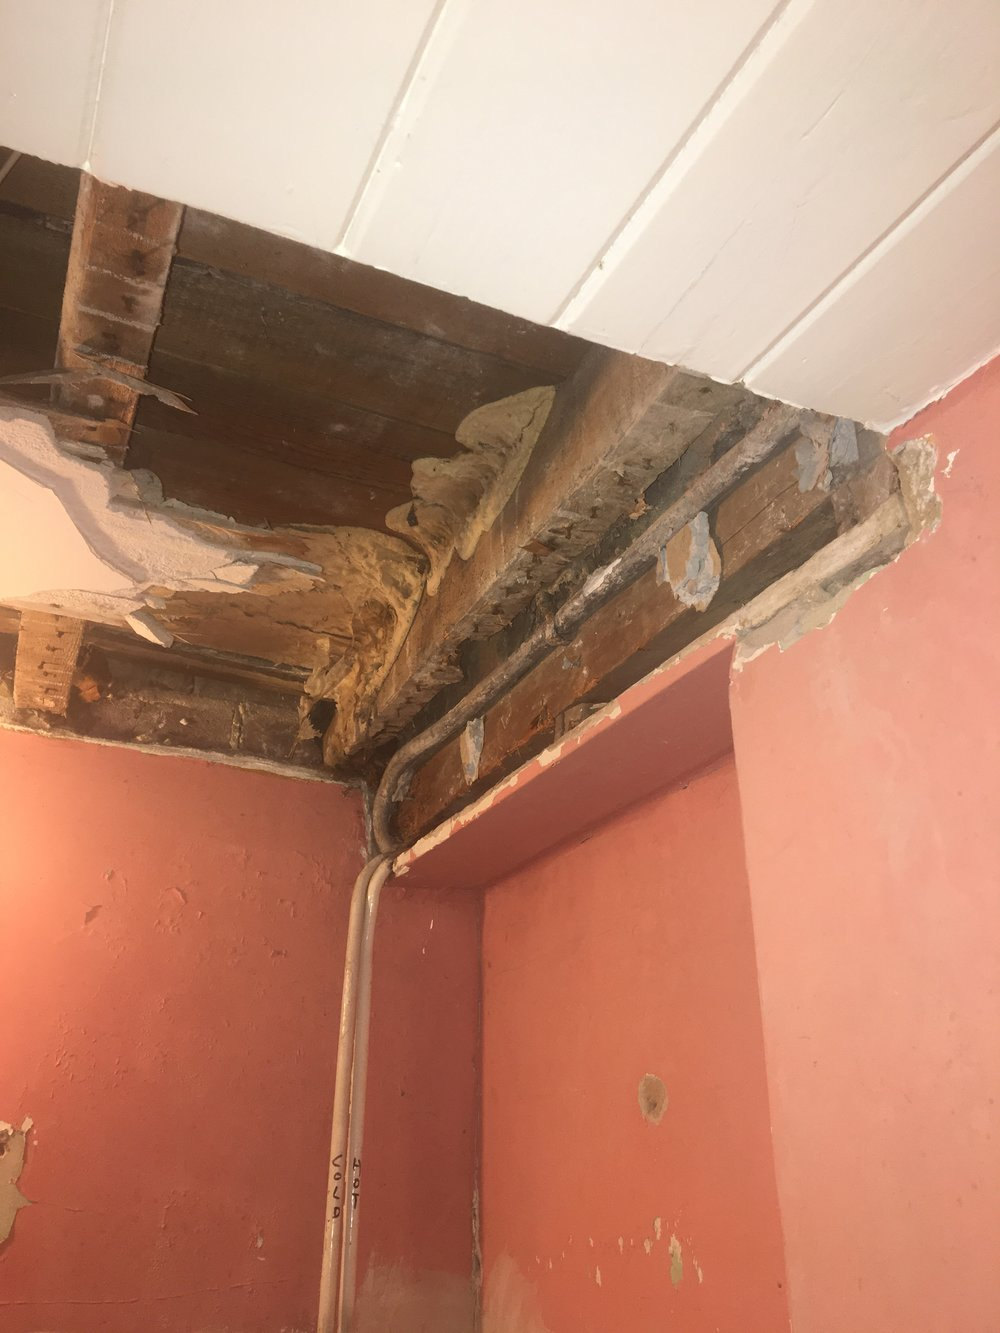 Nice bit of dry rot that had to be treated.